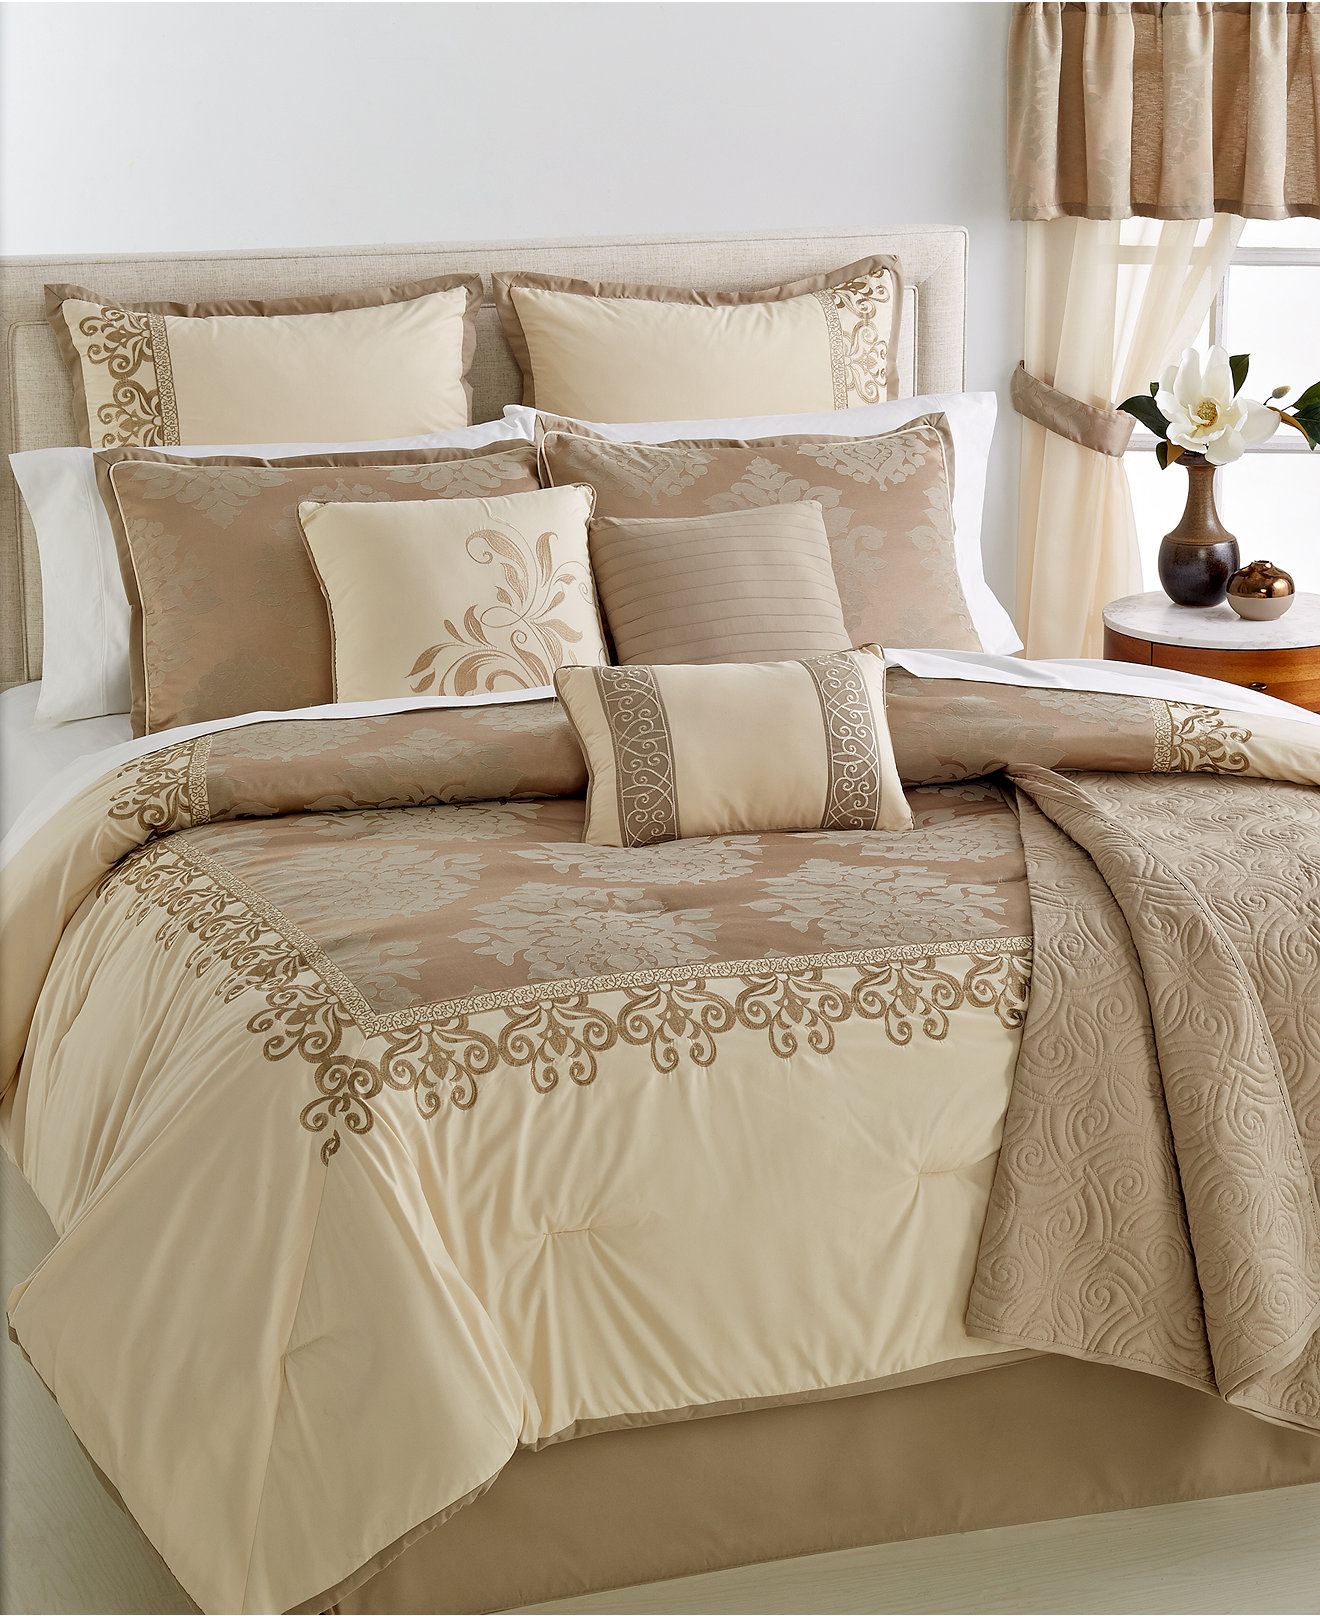 Adorable full comforter sets Bed queen size and king bedsize also pillows and cushion combined with headboards and curtains